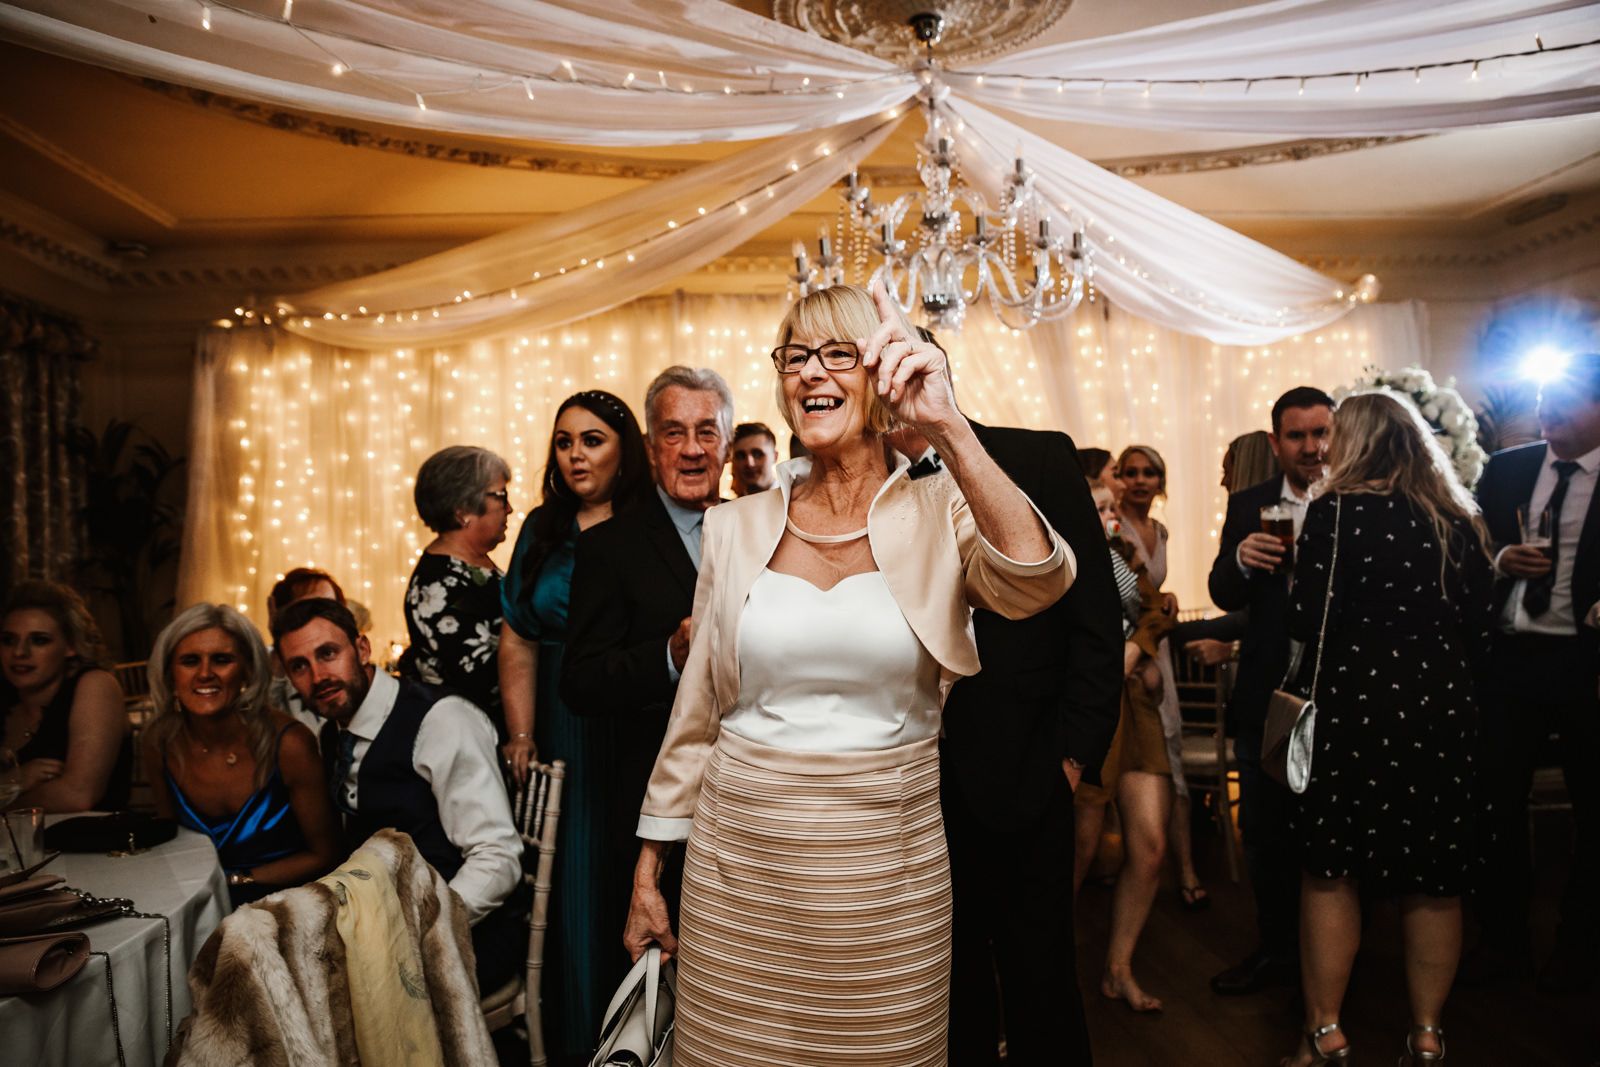 Mother of the bride dancing